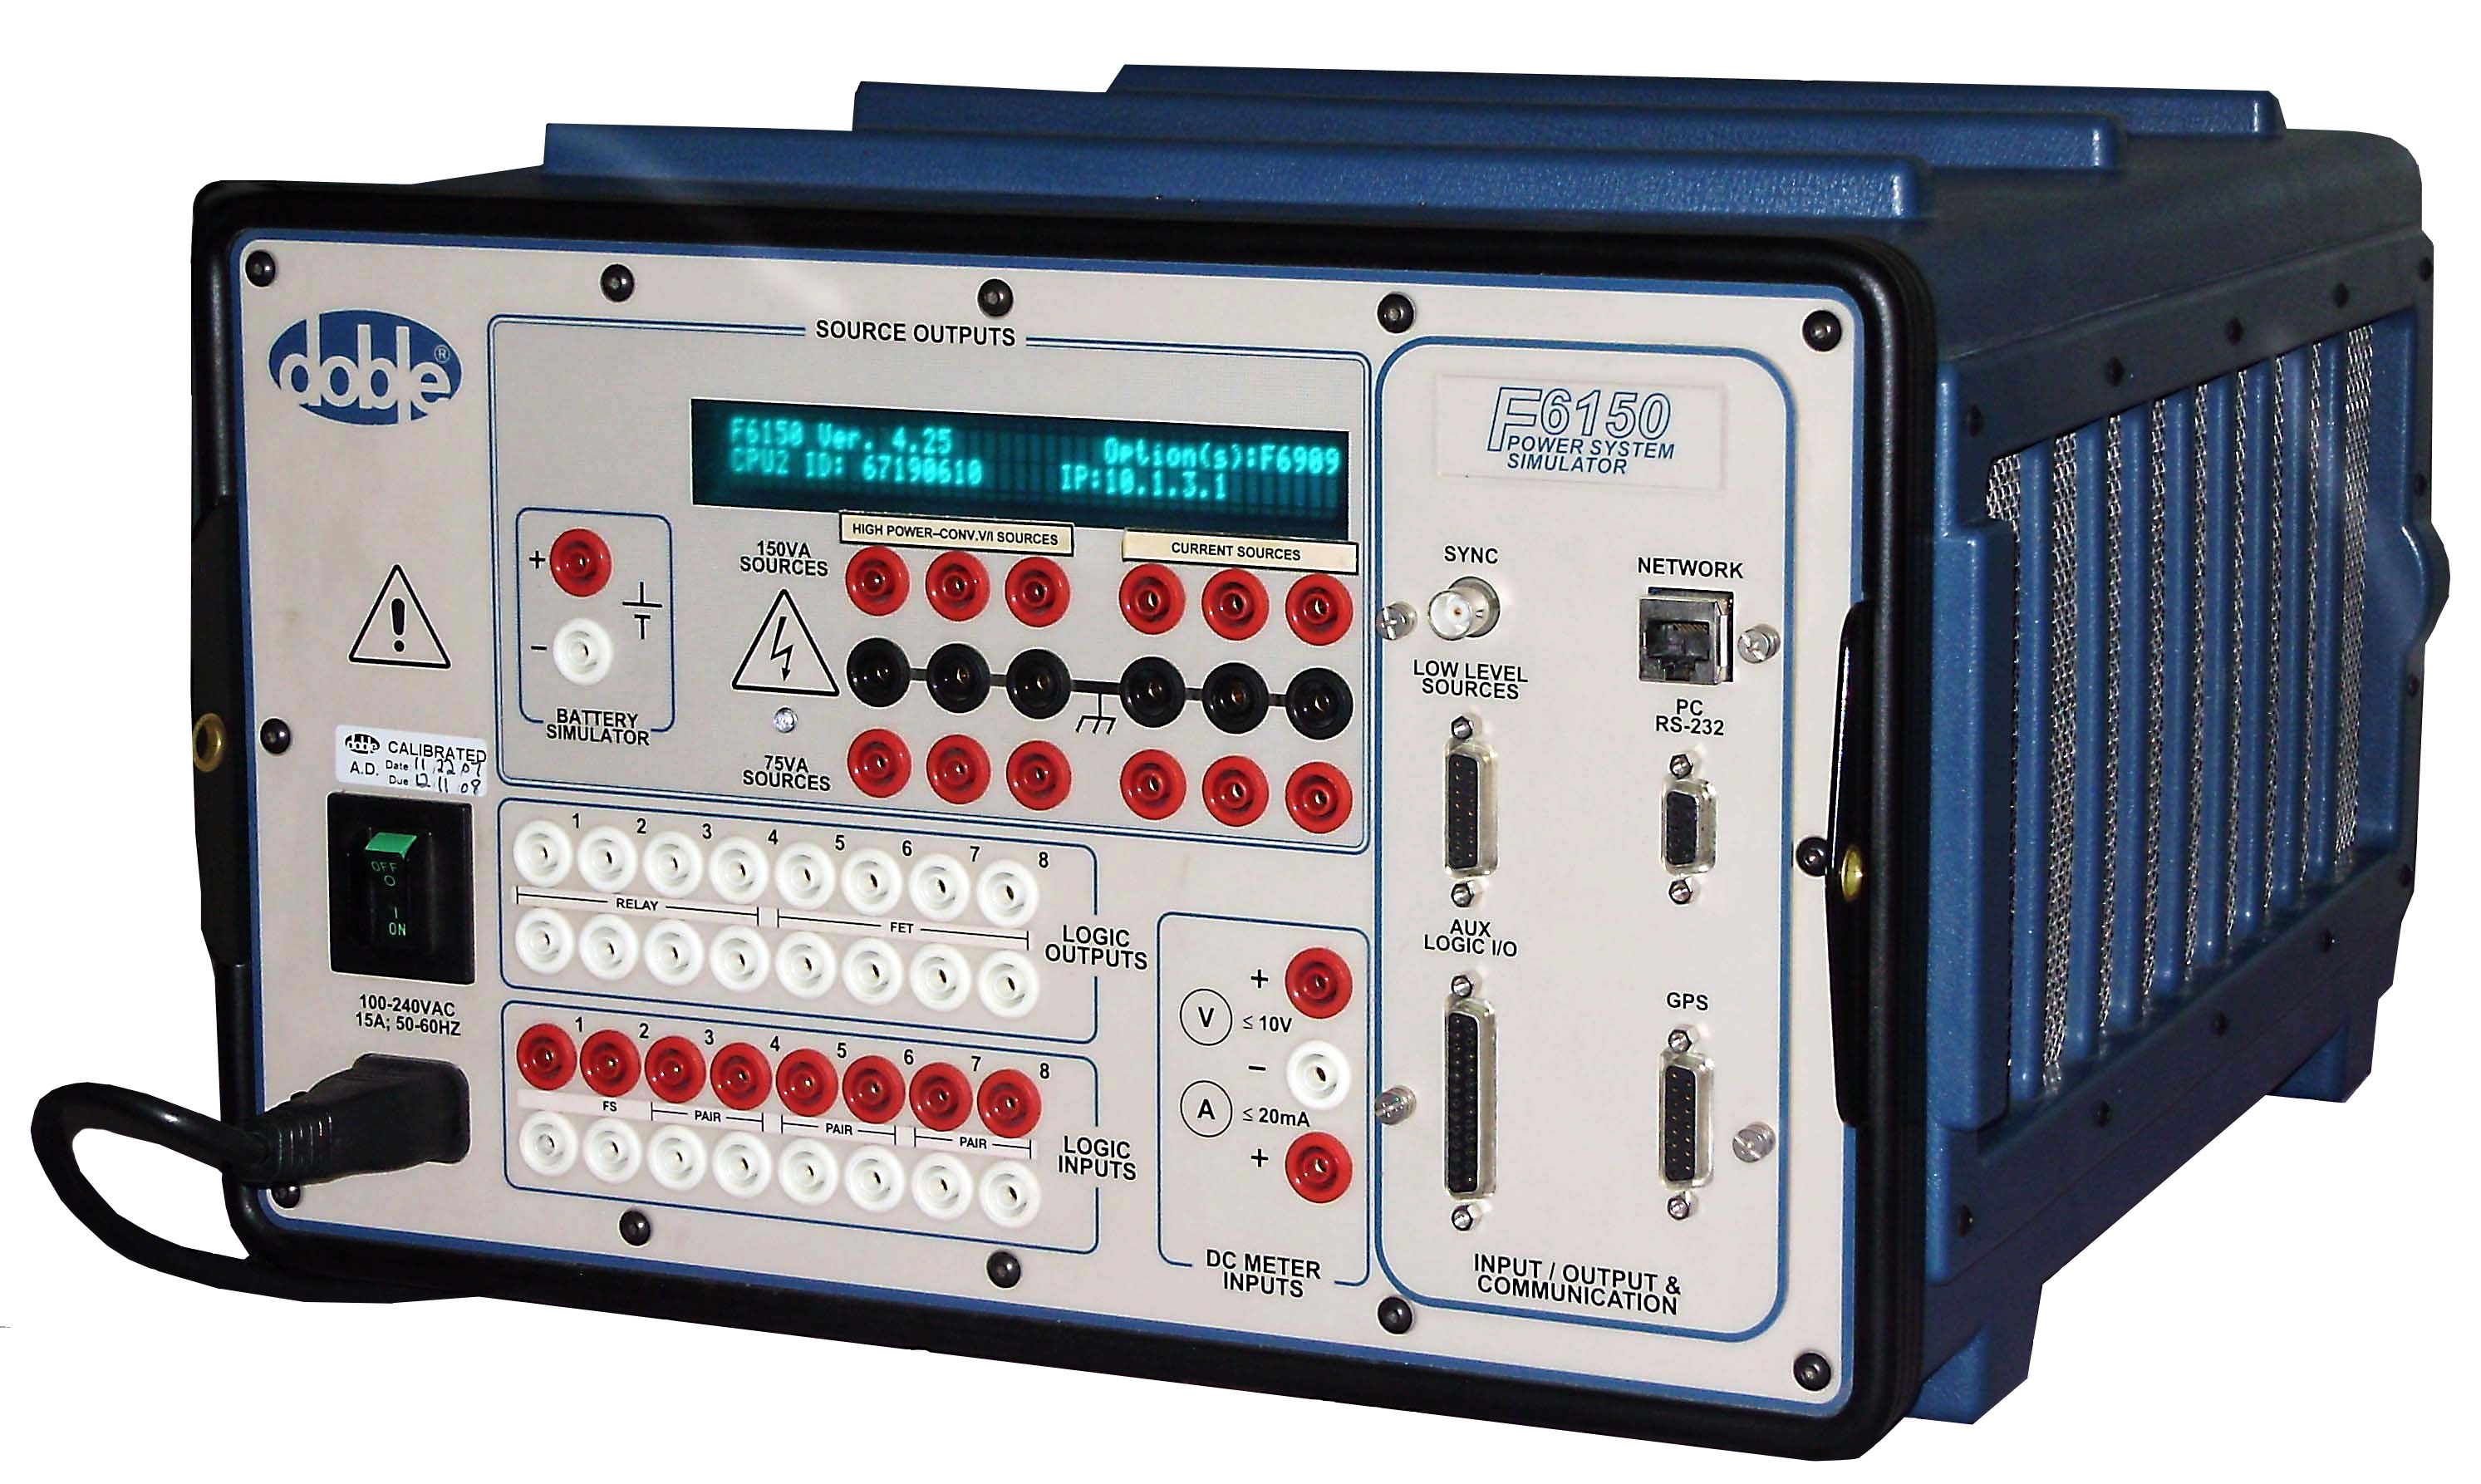 Rent Electrical & High Voltage Test Equipment | Substation, Power Transformers, HV Power Lines